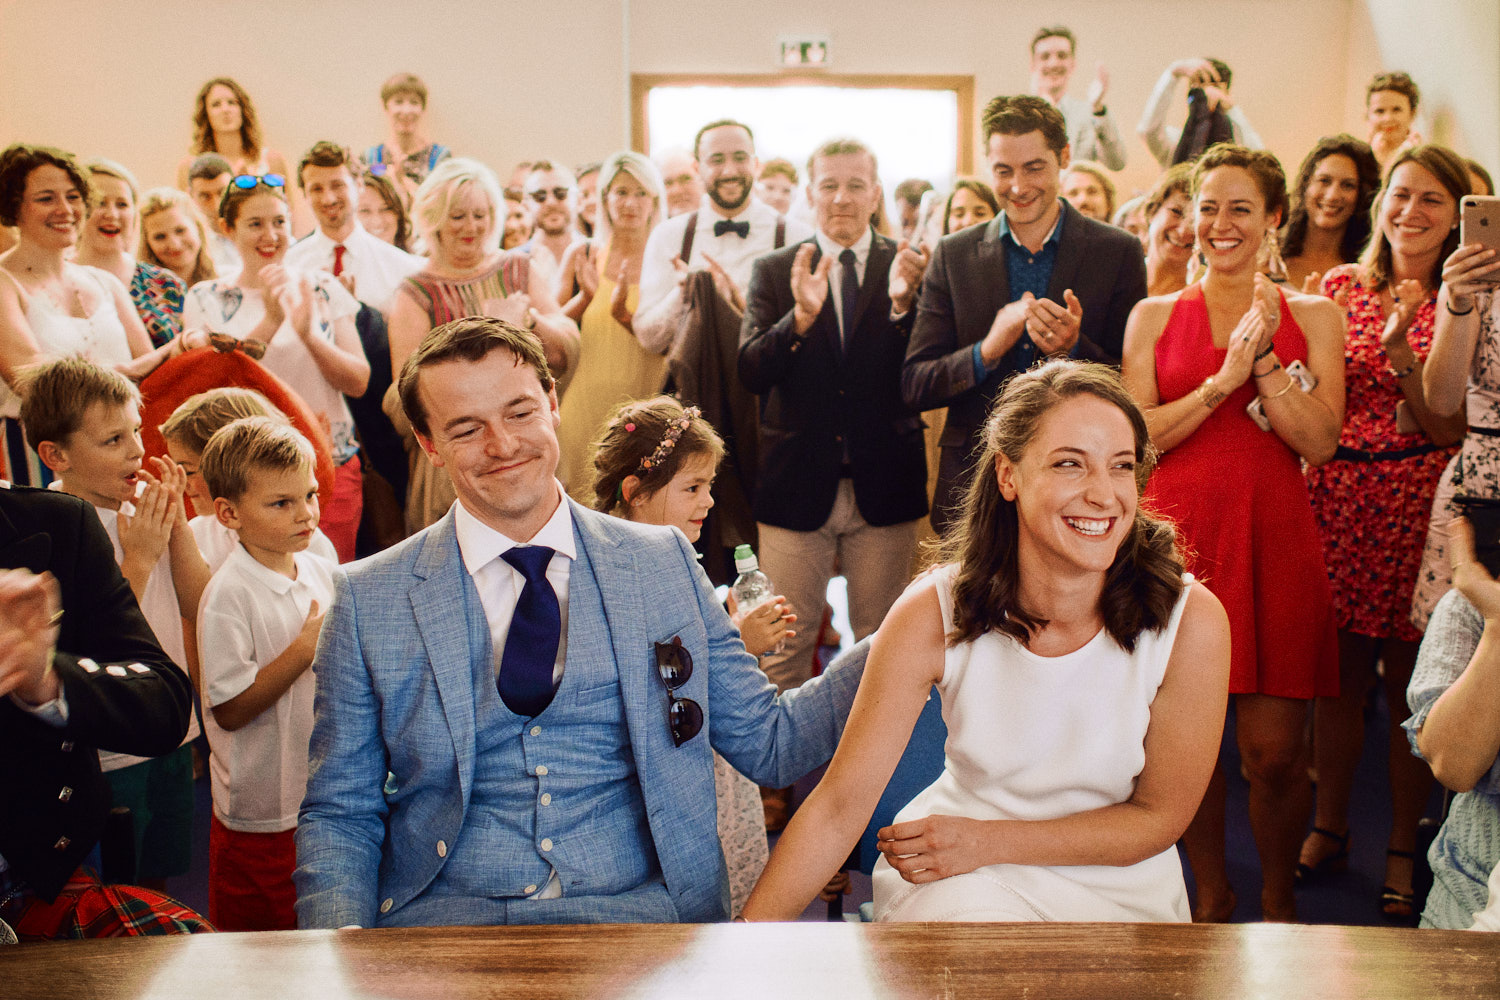 Bride and groom smile during wedding ceremony, surrounded by all their friends and family